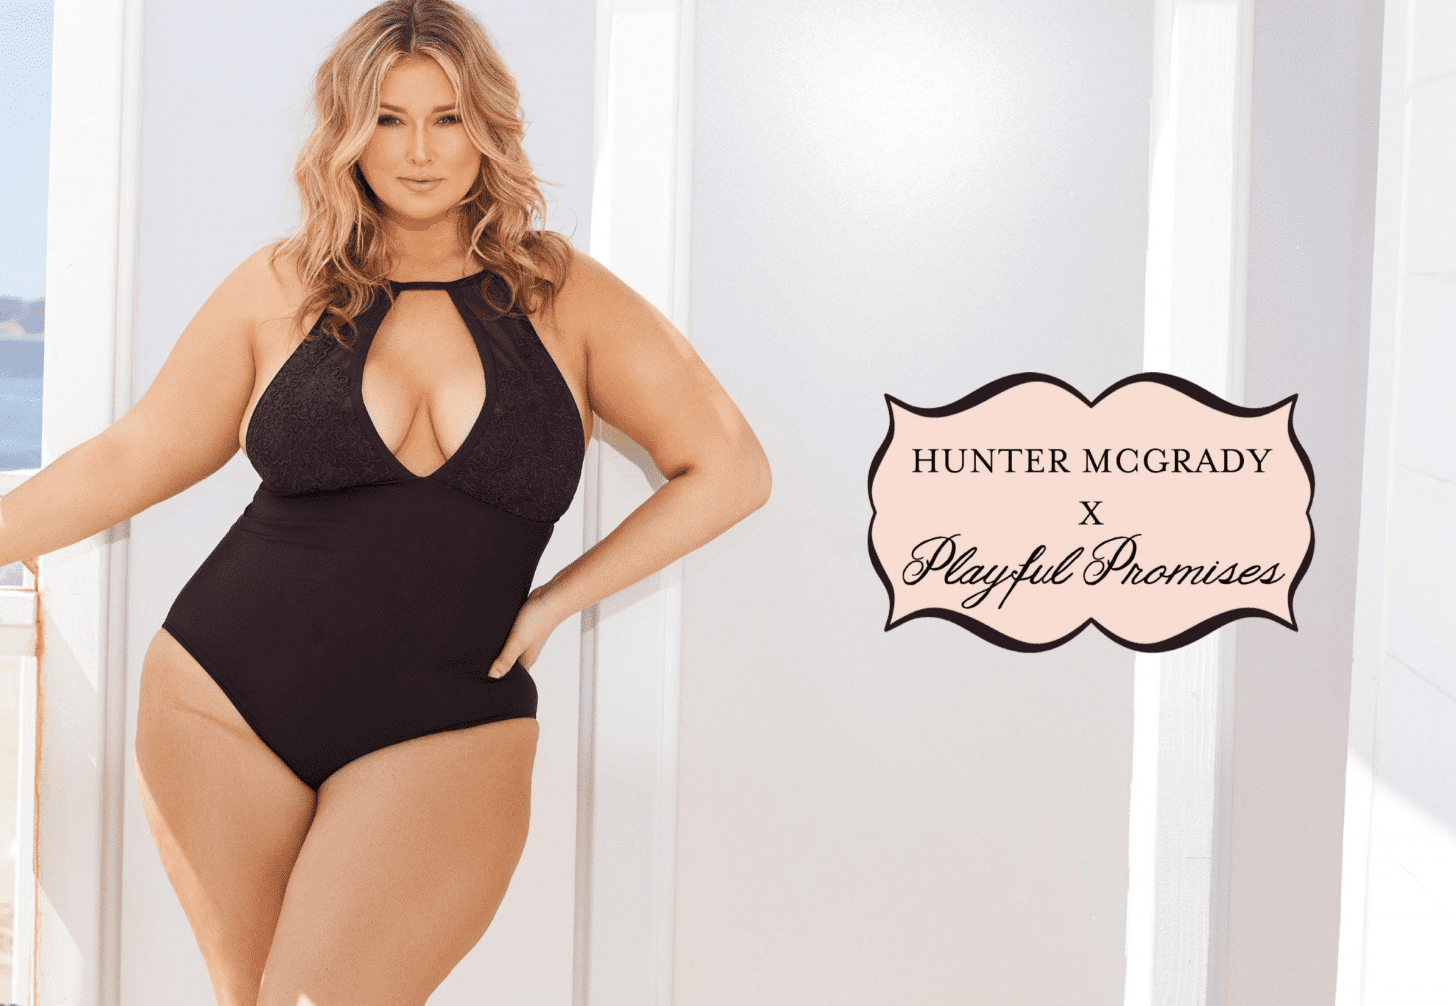 Hunter McGrady x Playful Promises Campaign